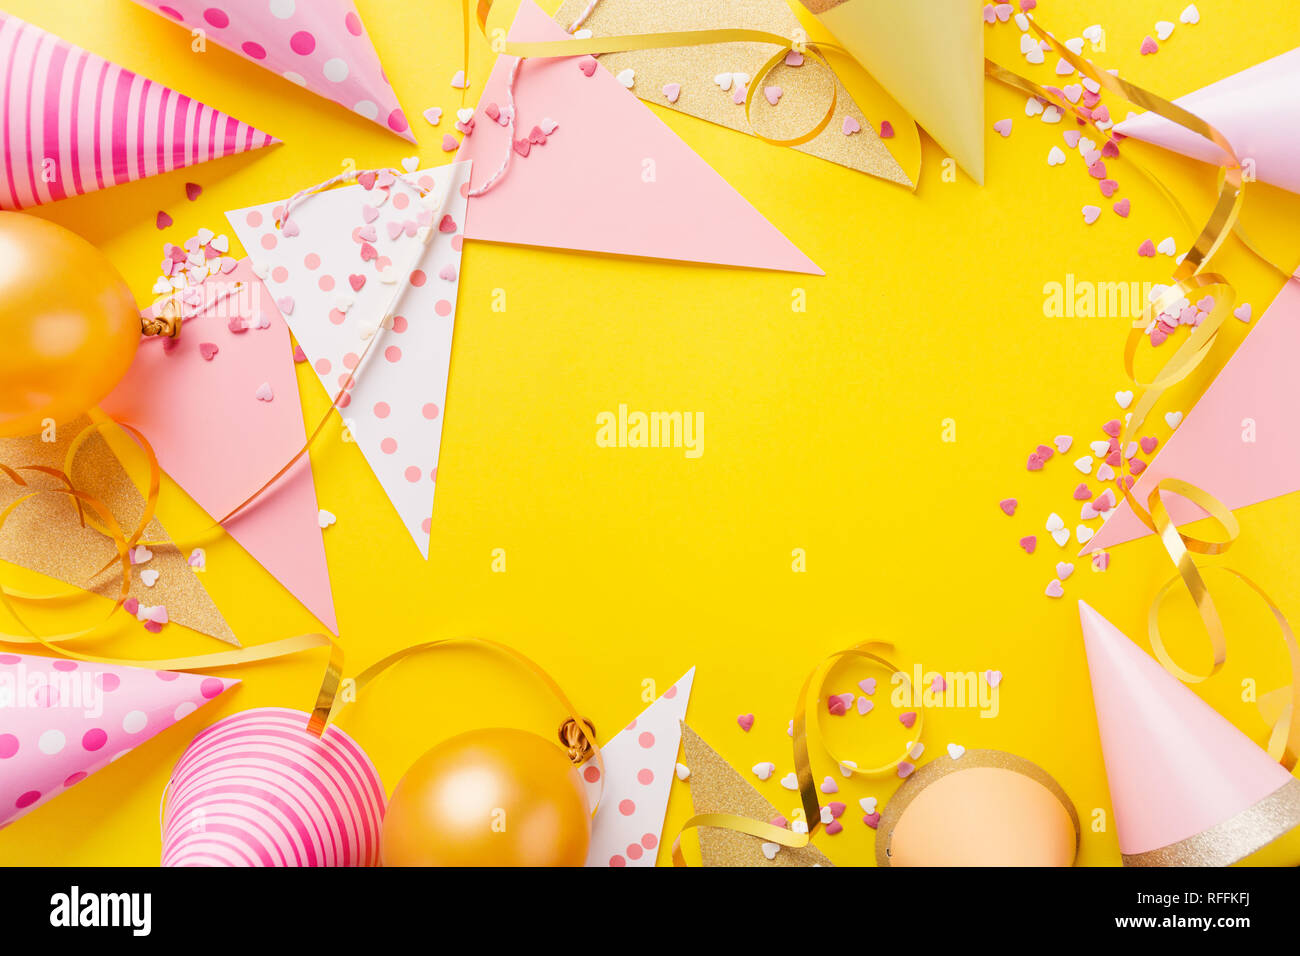 Colorful Happy Birthday Or Party Background Flat Lay Wtih Hats Confetti And Ribbons On Yellow Top View Wit Copy Space